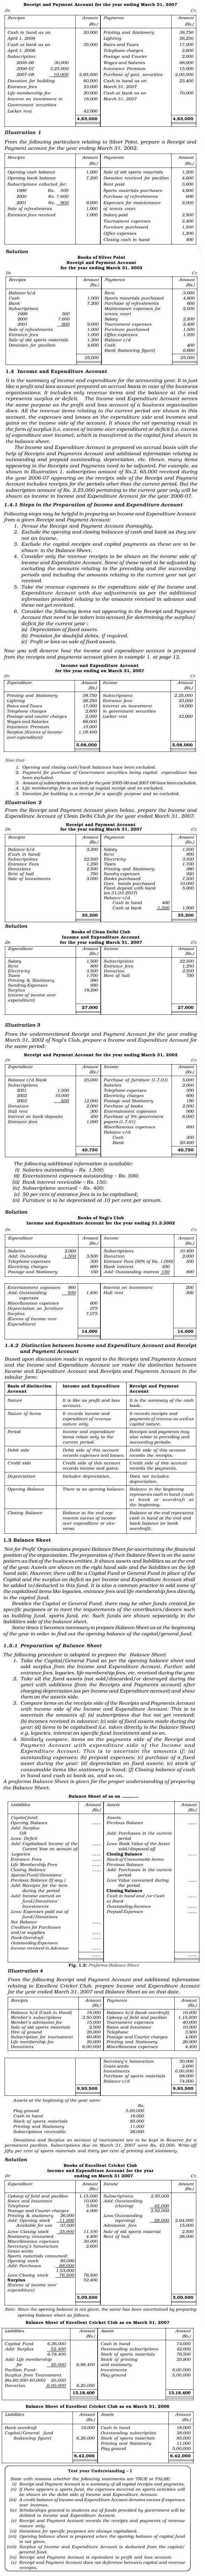 NCERT Class XII Accountancy I Chapter 1 - Accounting for Not-for-Profit Organisation